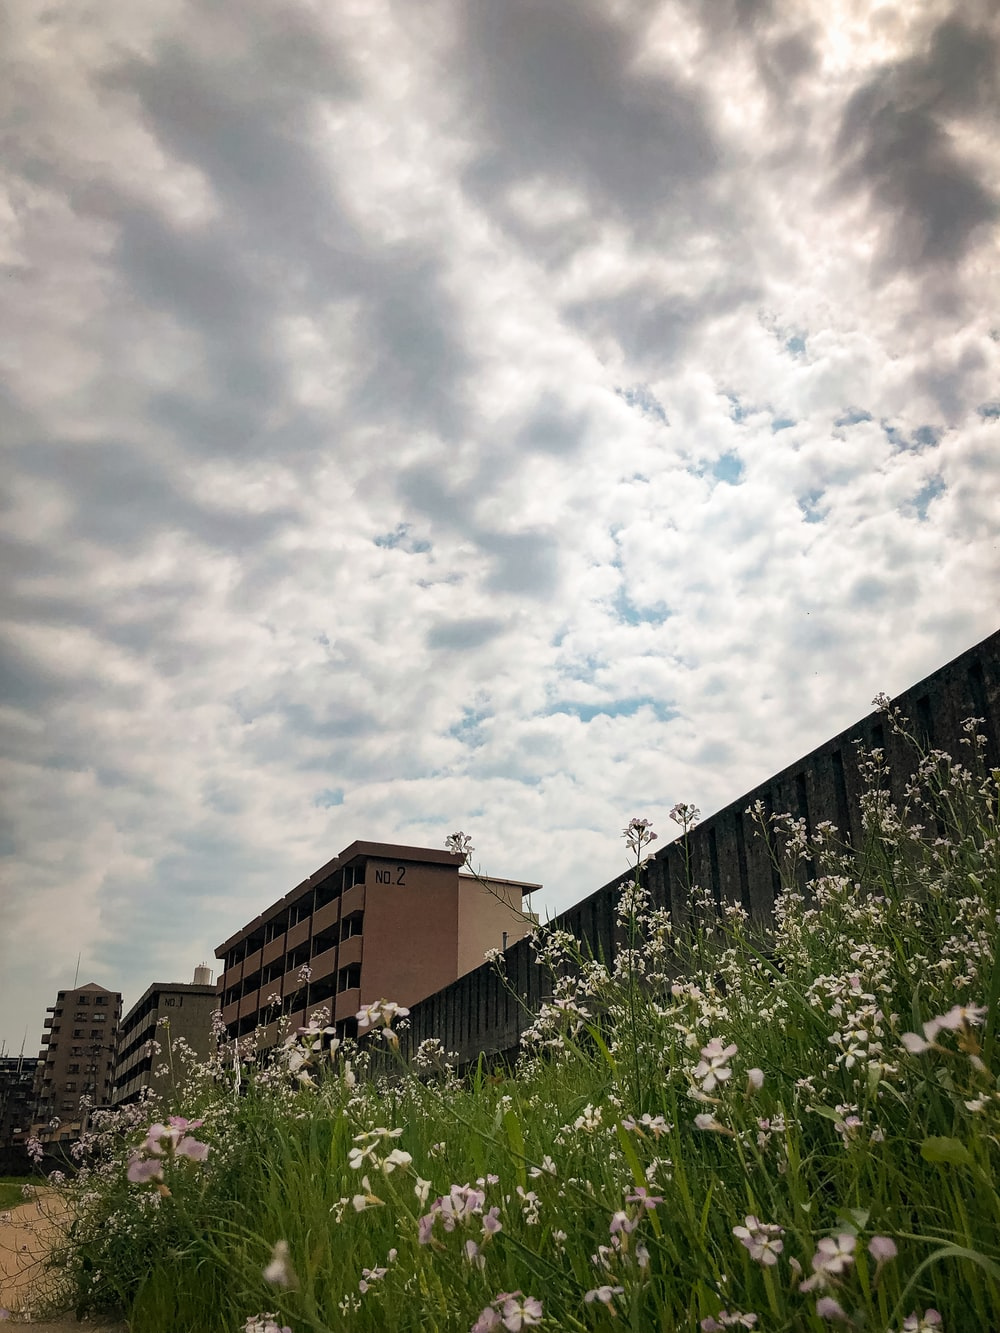 white flowers under cloudy sky during daytime